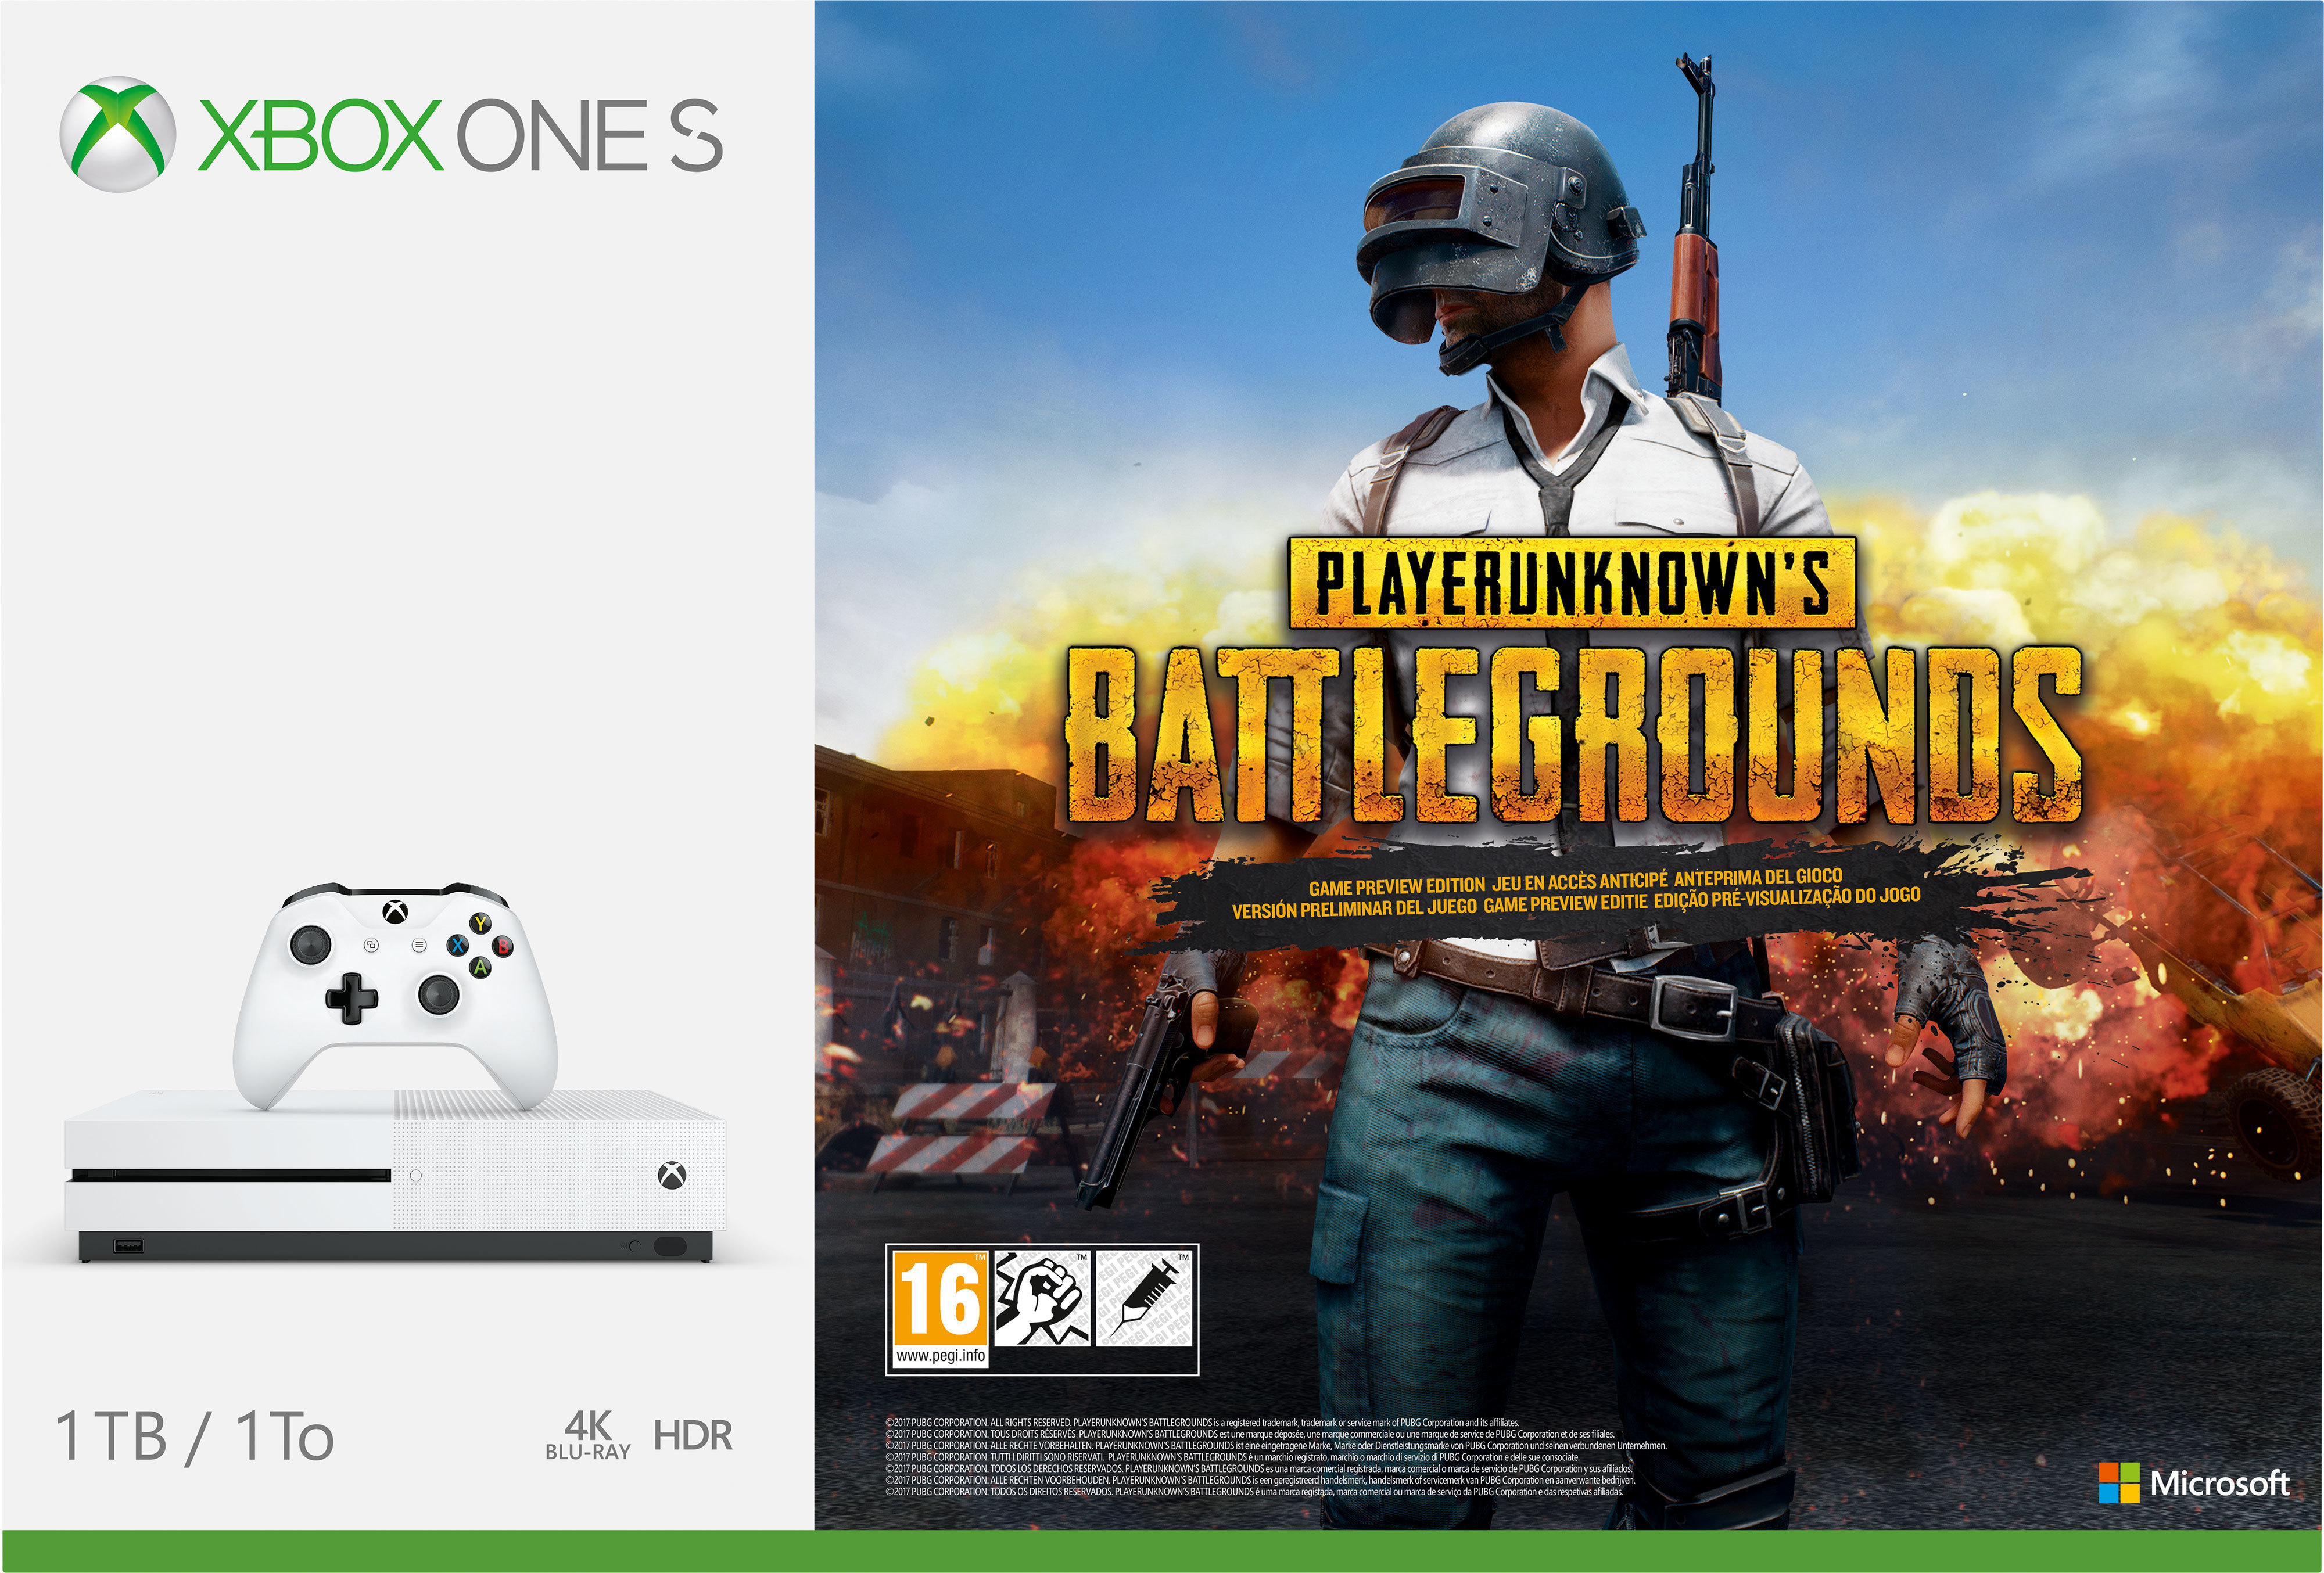 Pack Xbox One S 1To - PLAYERUNKNOWN'S BATTLEGROUNDS